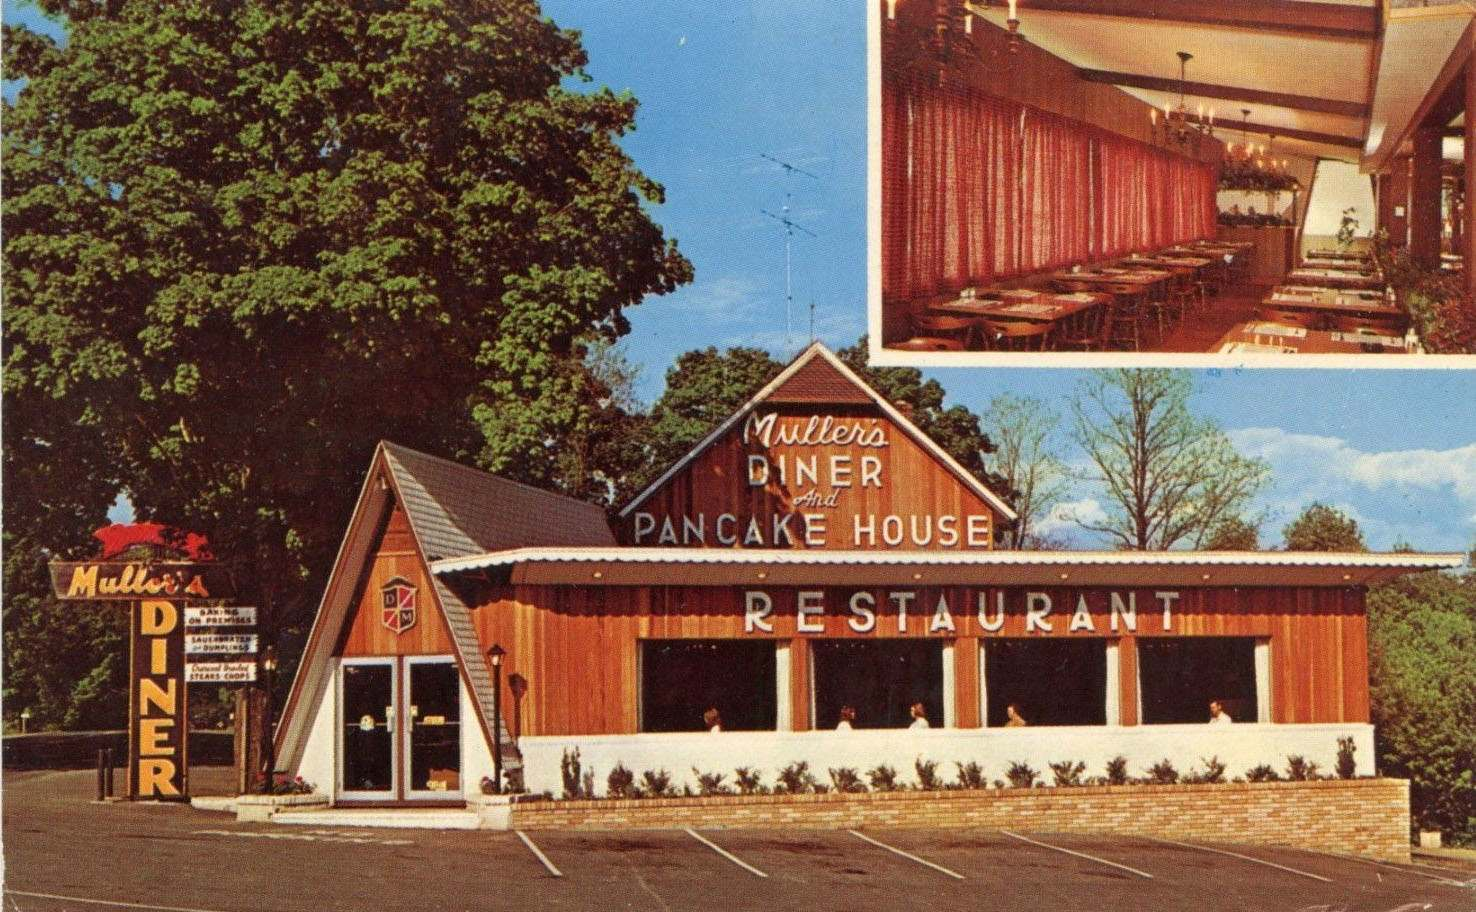 Muller's Diner - NORTH of STROUDSBURG PA - 1973